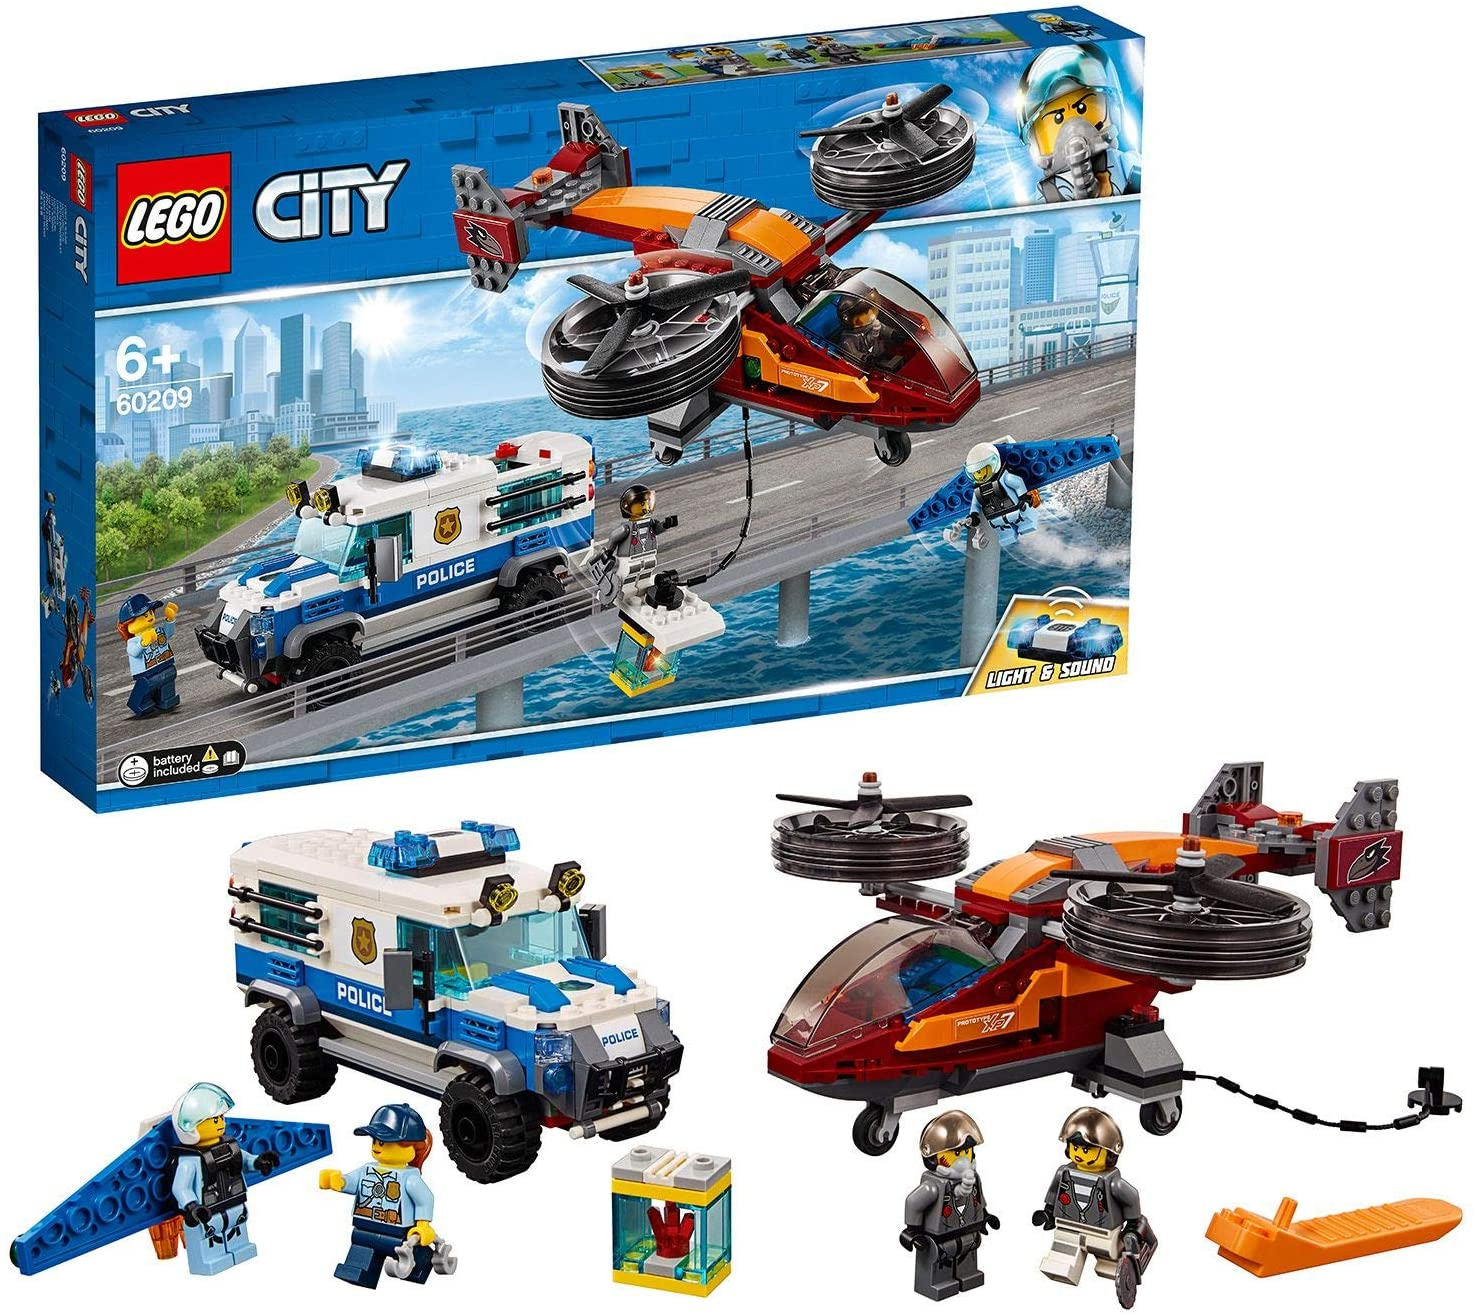 LEGO City Police Sky Police Diamond Heist Playset, Toy Helicopter & Truck, Police Toys for Kids